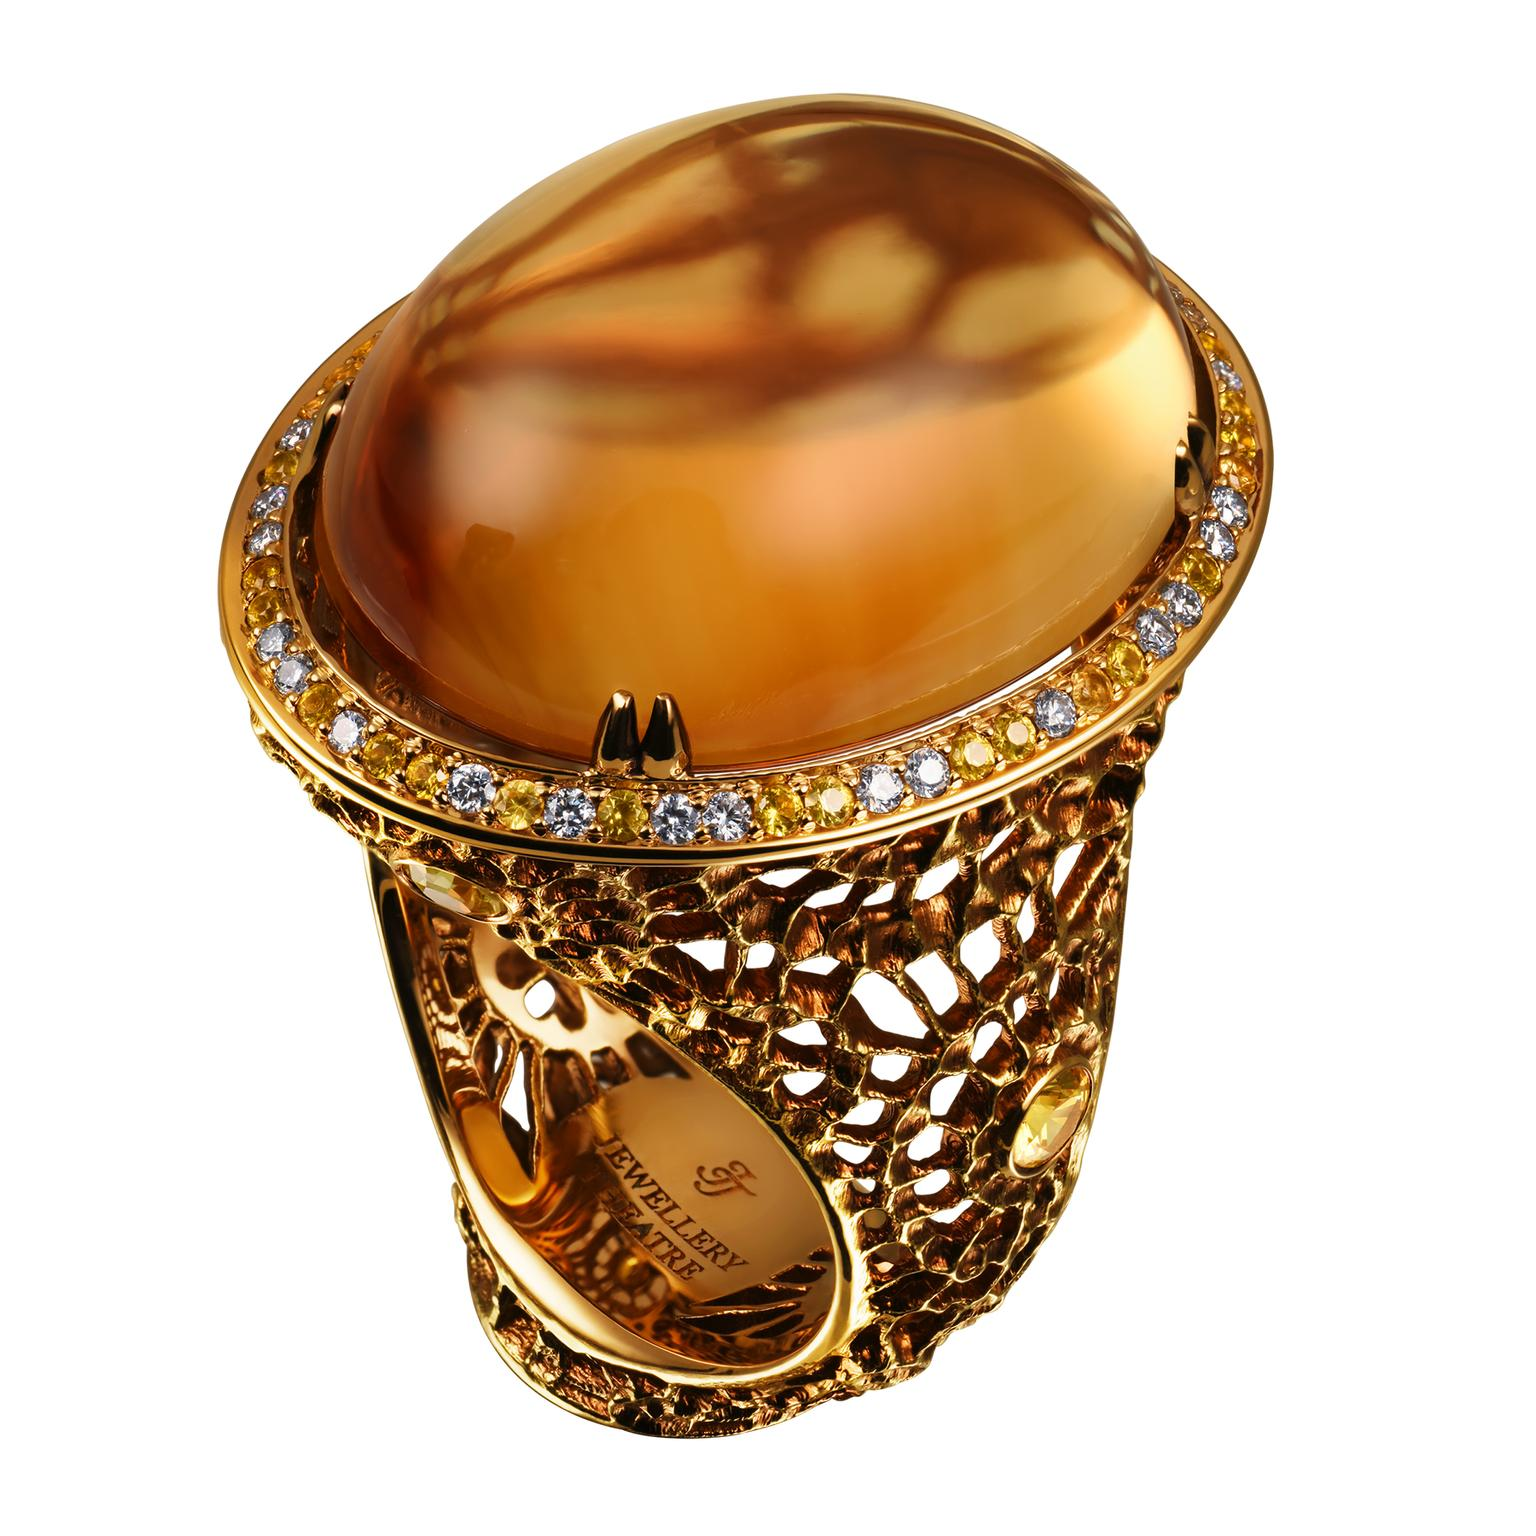 Jewellery Theatre citirine cocktail ring